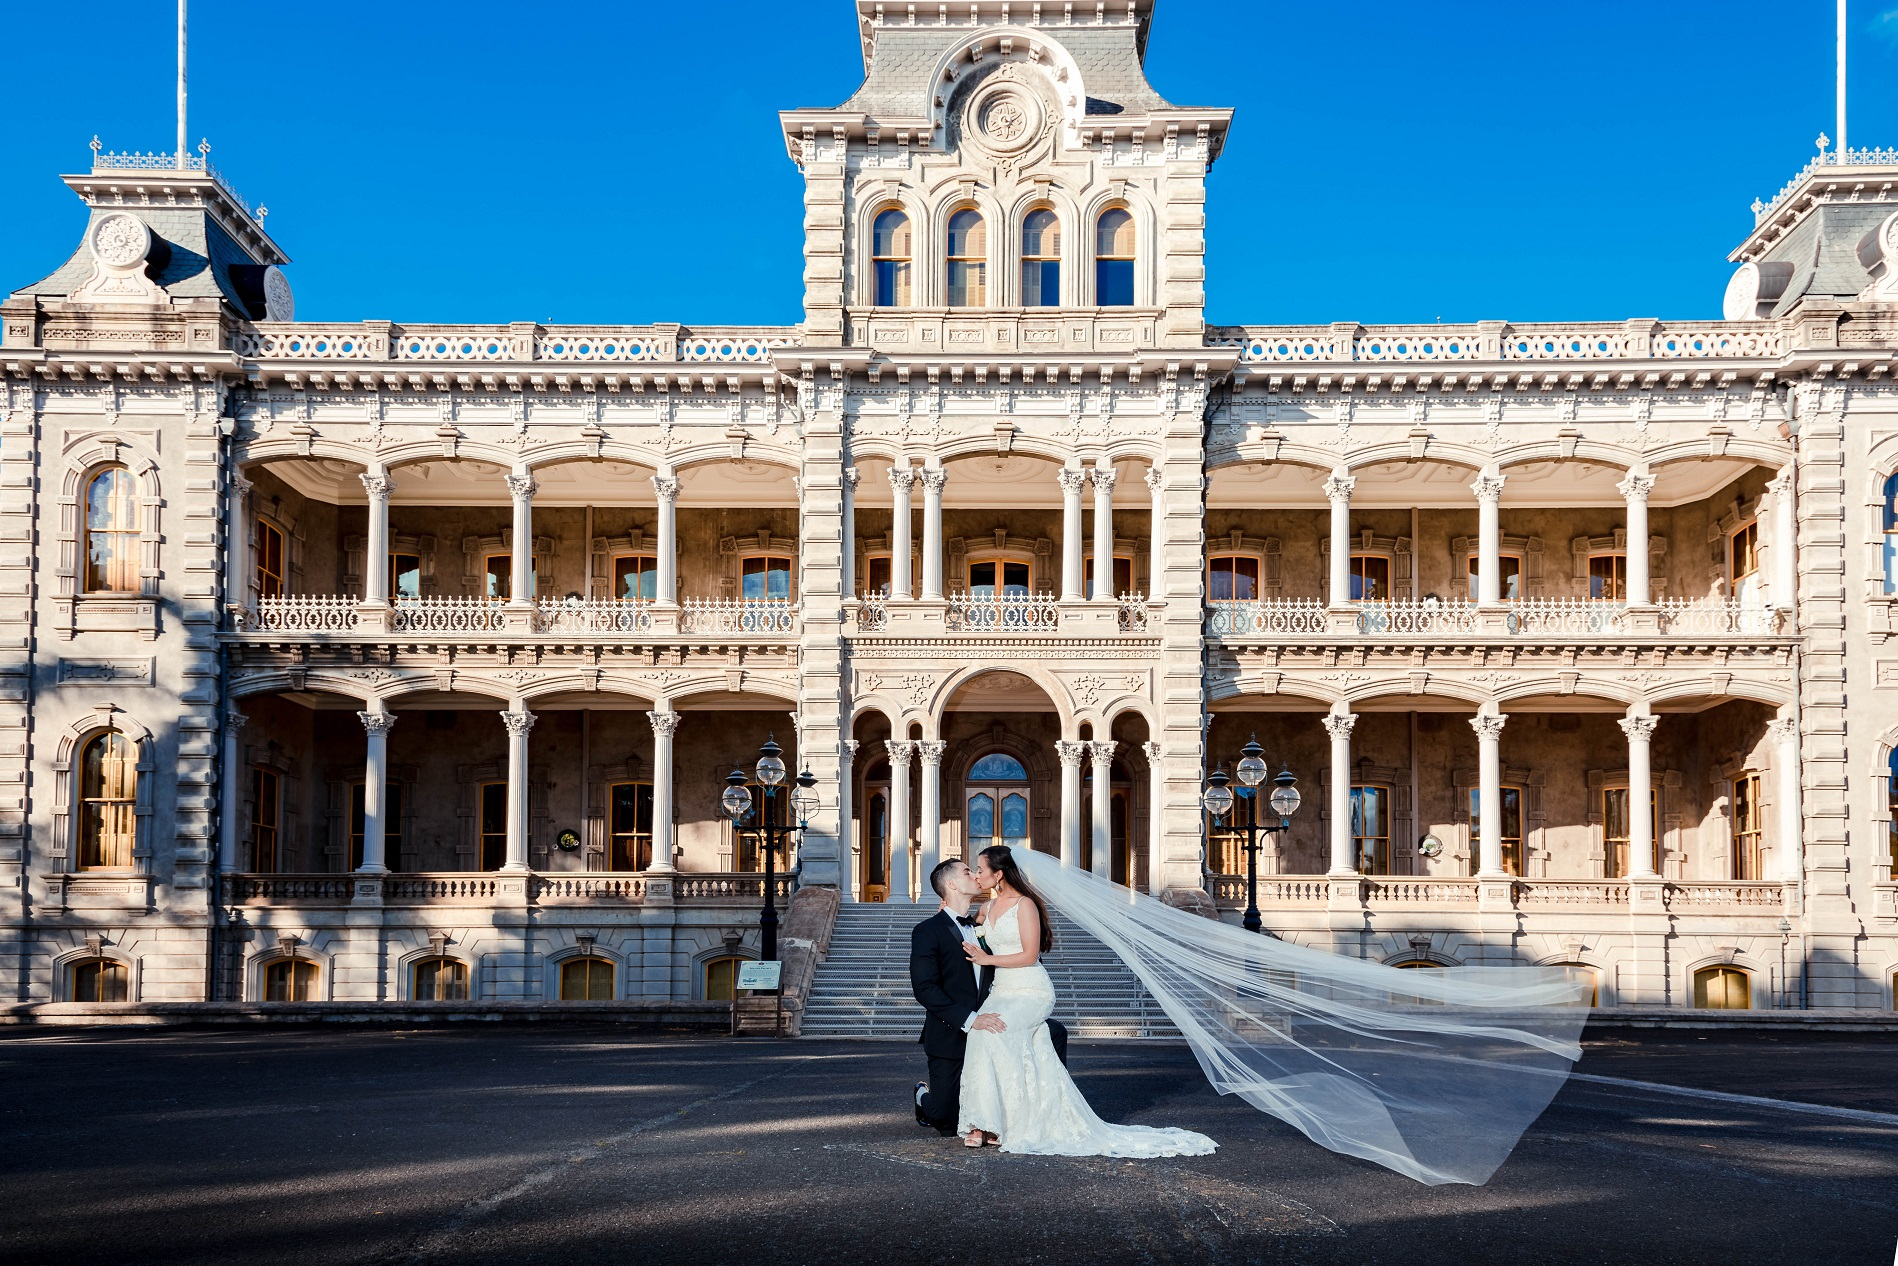 iolani palace bride groom wedding portrait photography oahu hawaii